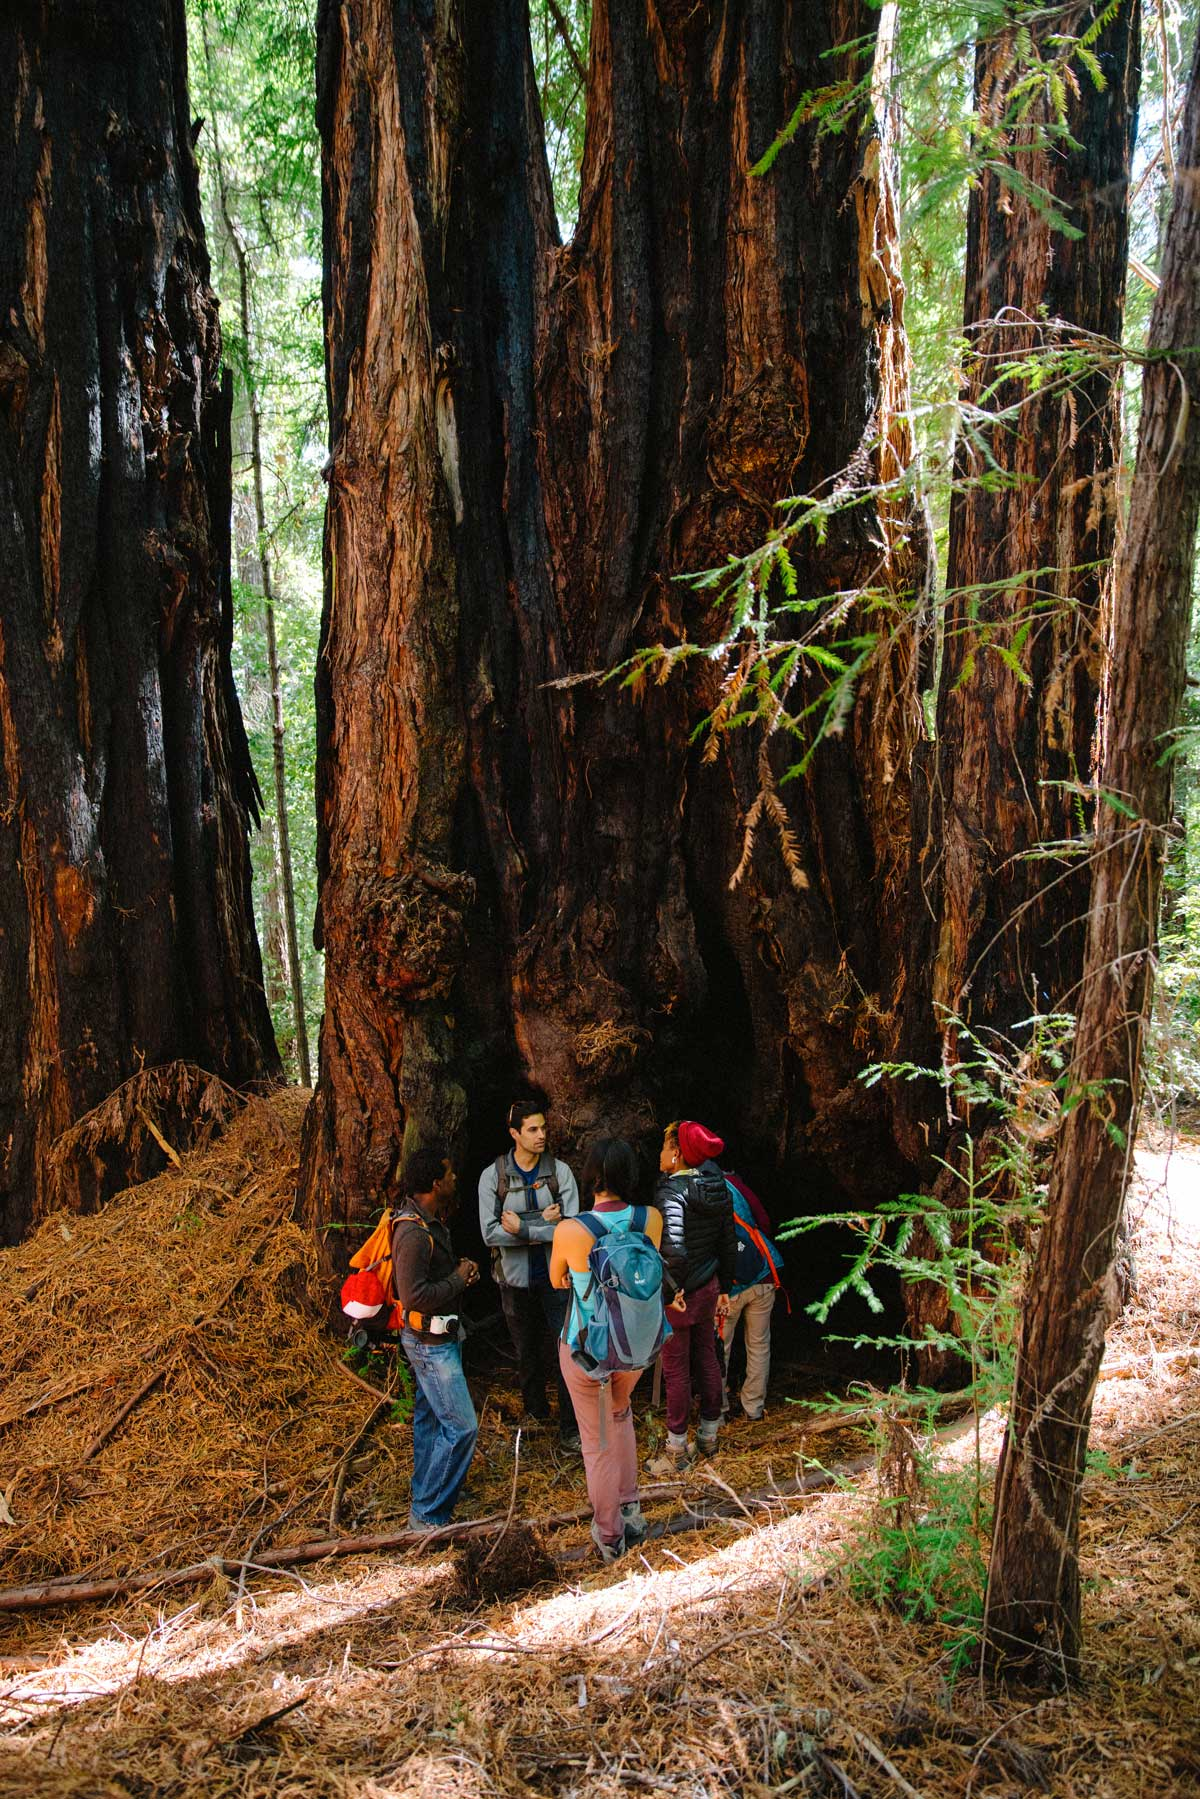 A diverse group of young adults, all people of color, gather at the base of a redwood.